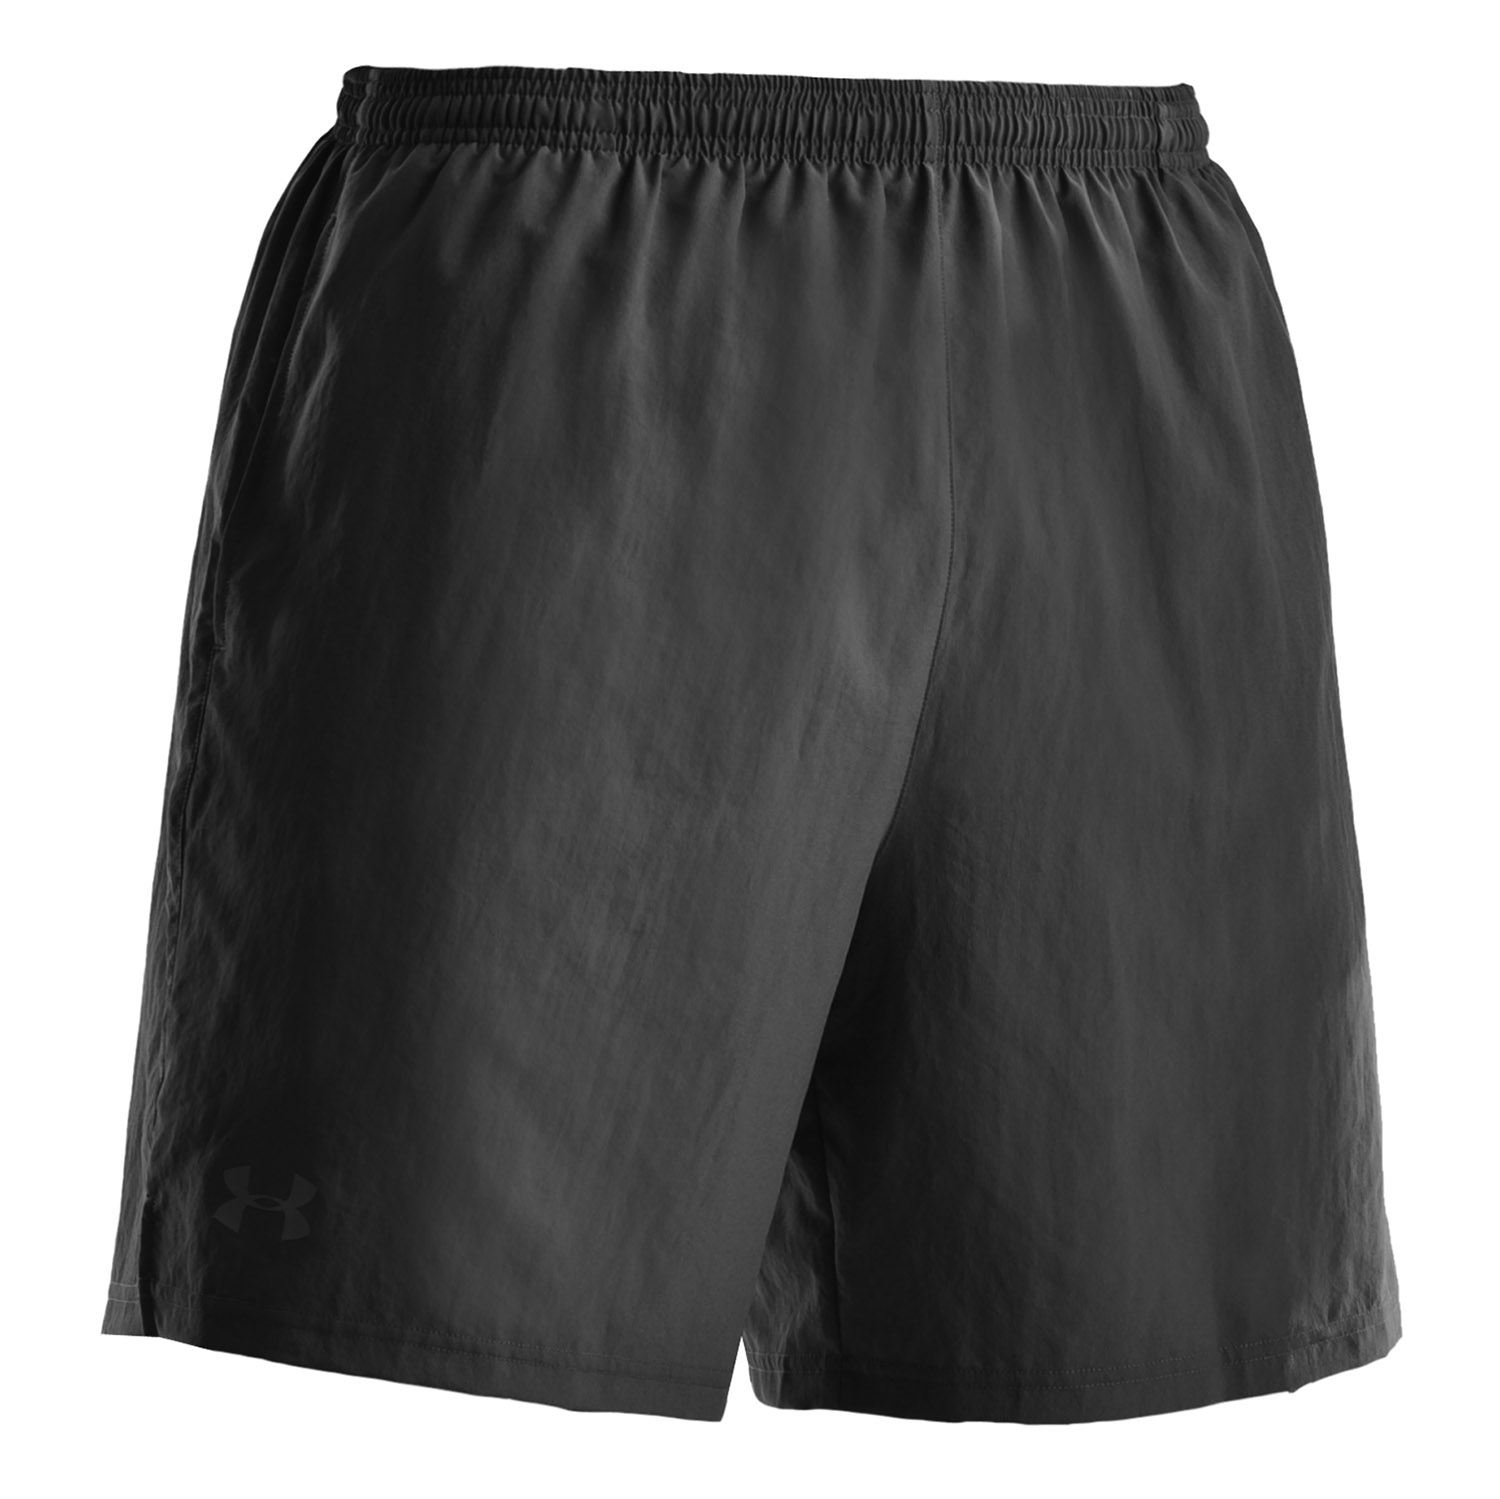 Under Armour HeatGear Tactical Training Shorts